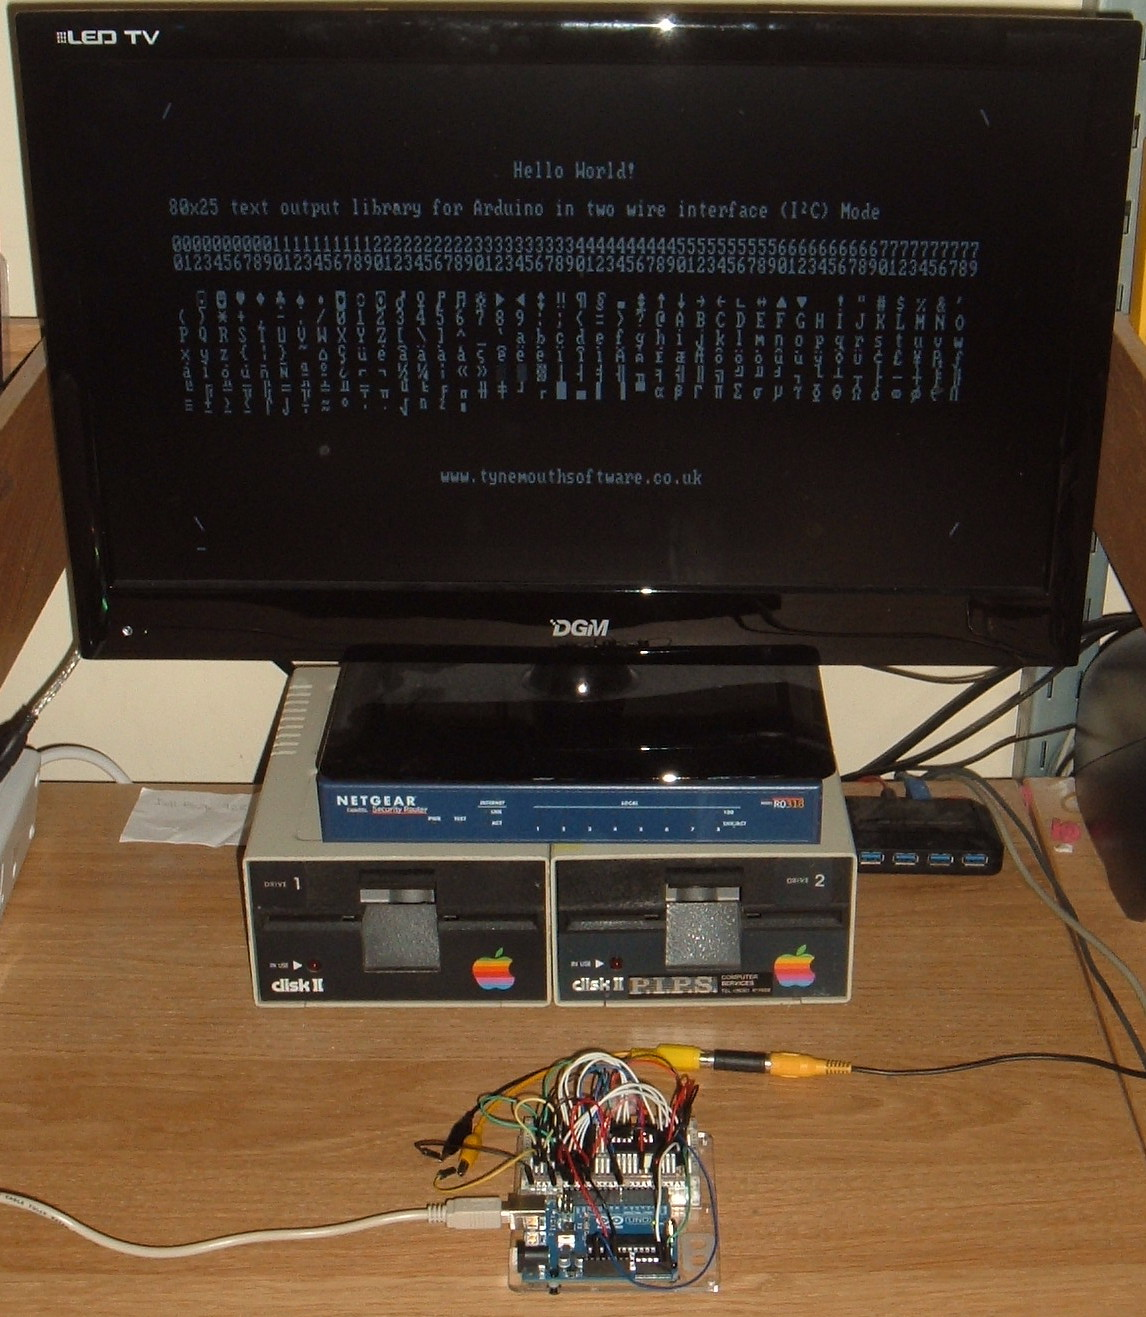 Tynemouth Software: Arduino 80x25 TV Video Output Library I2C Mode